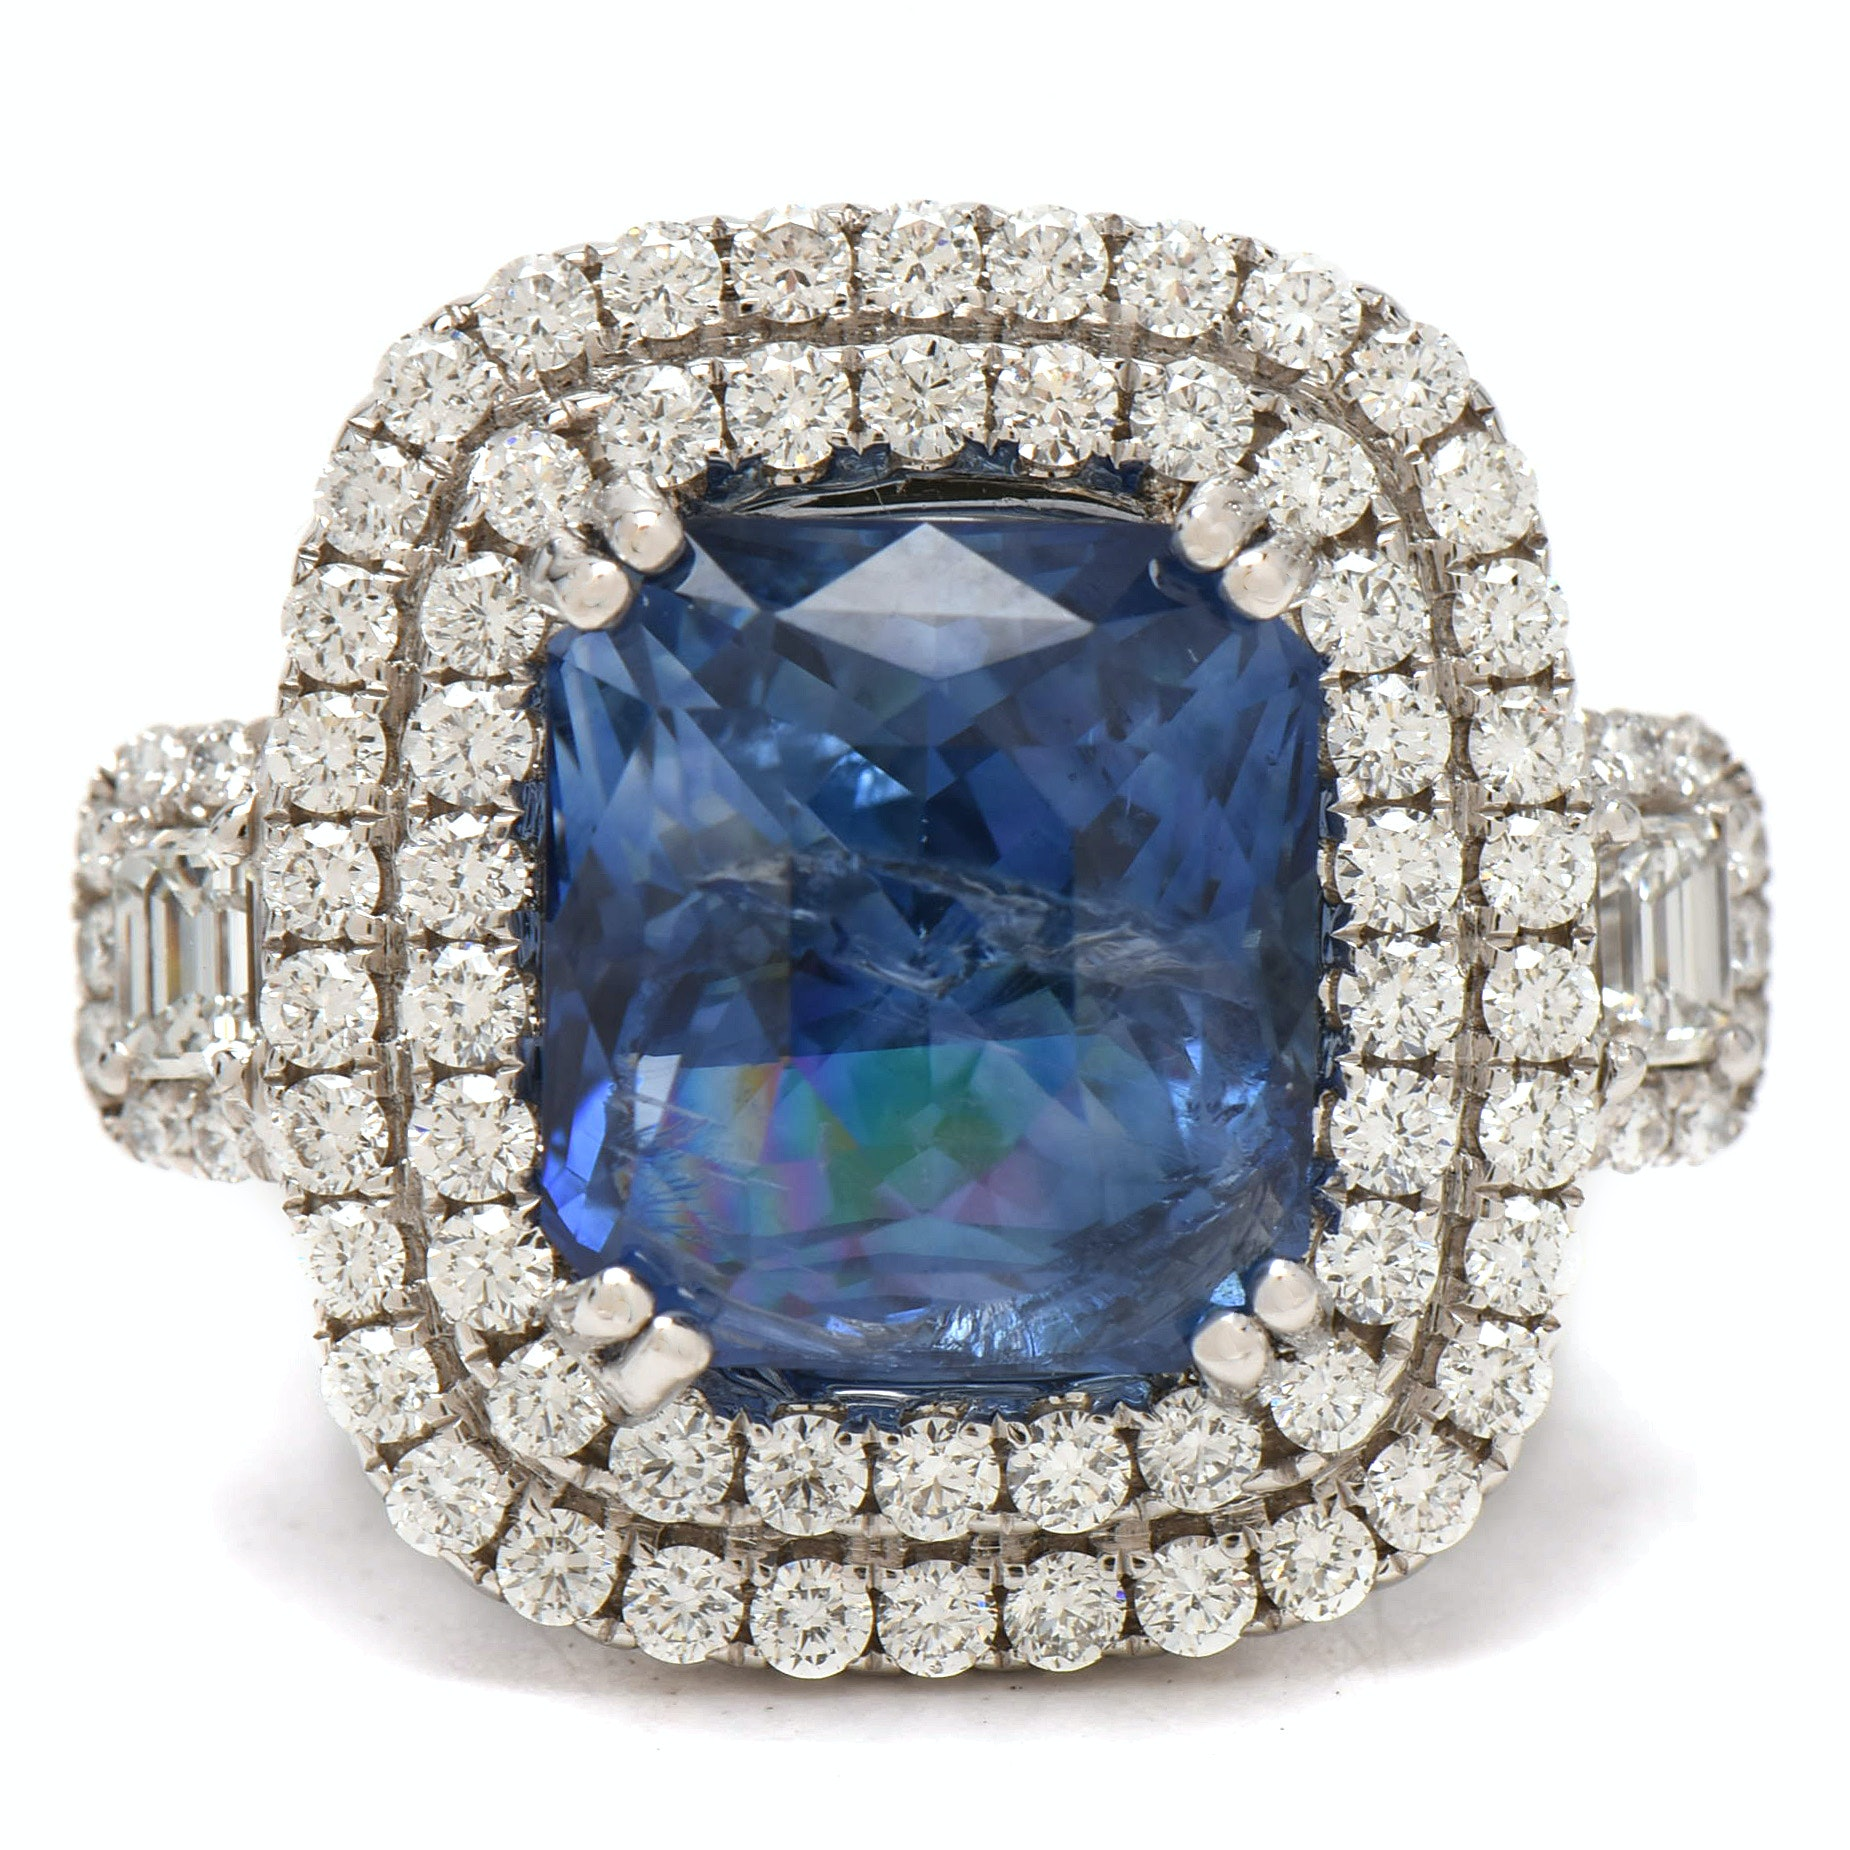 18K White Gold 10.24 CT Sapphire and 1.81 CTW Diamond Statement Ring, GIA Report